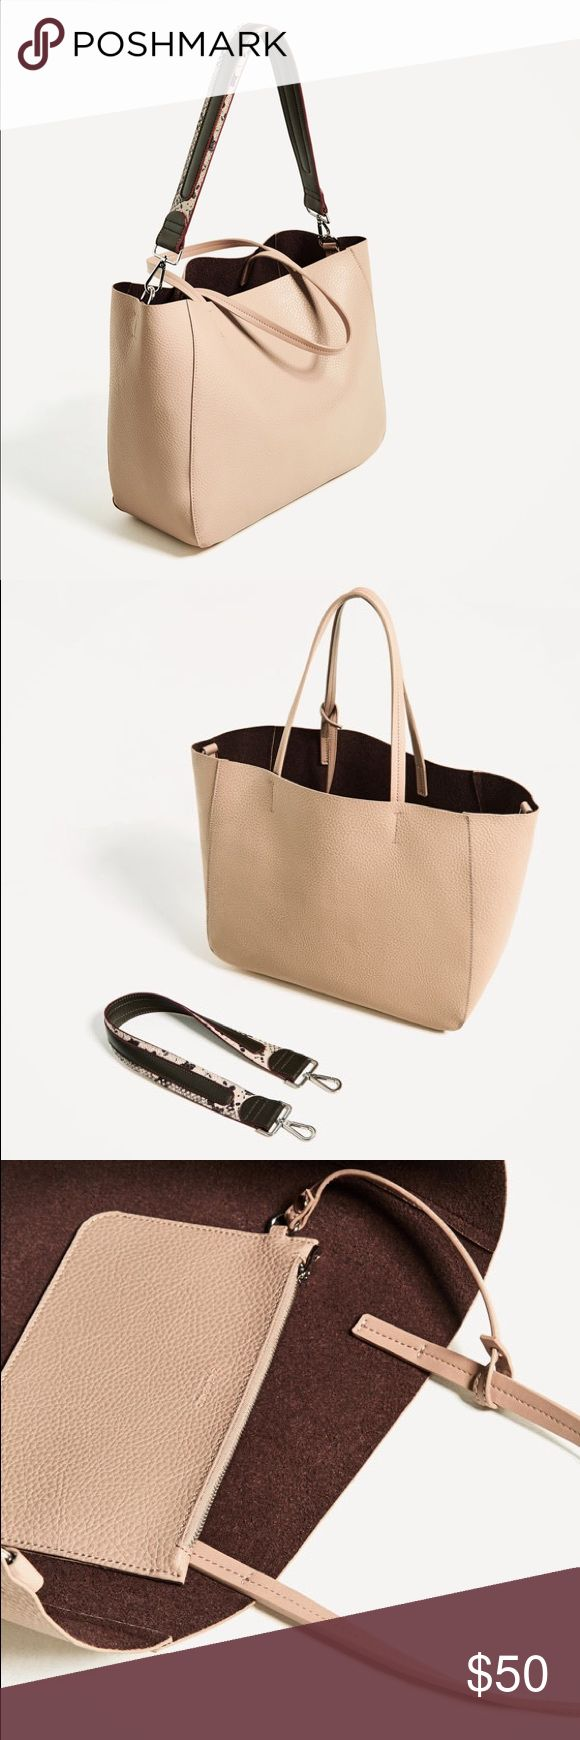 Zara tote bag with printed strap Nude. Comes with a inside little purse Zara Bags Totes